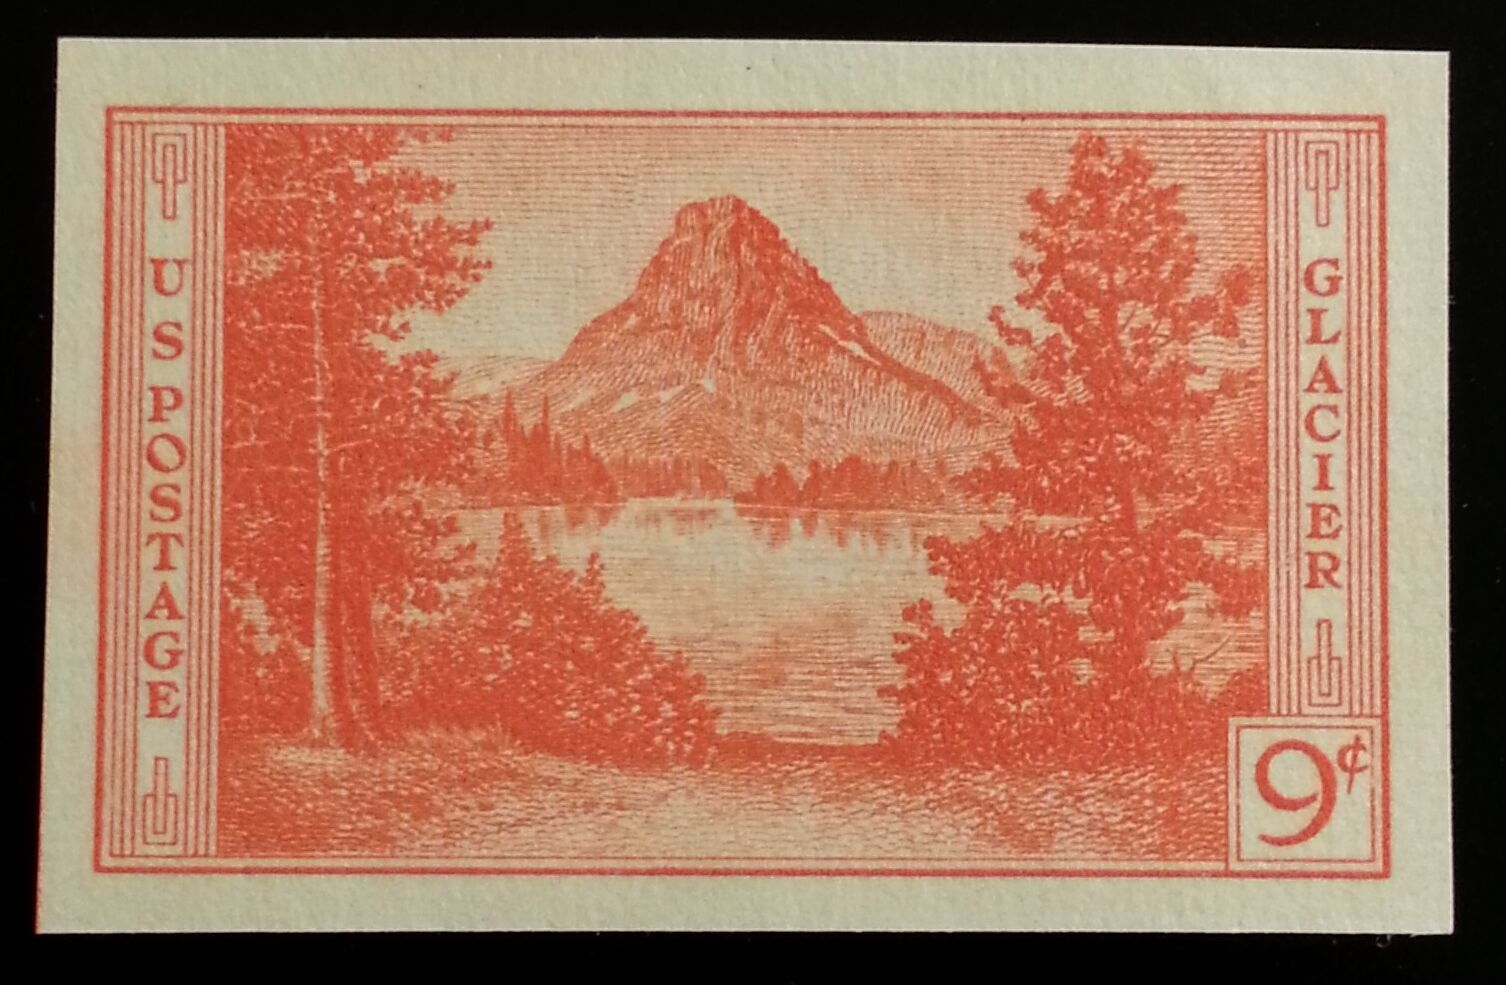 1935 9c Glacier, Imperforate Single Stamp issued withou